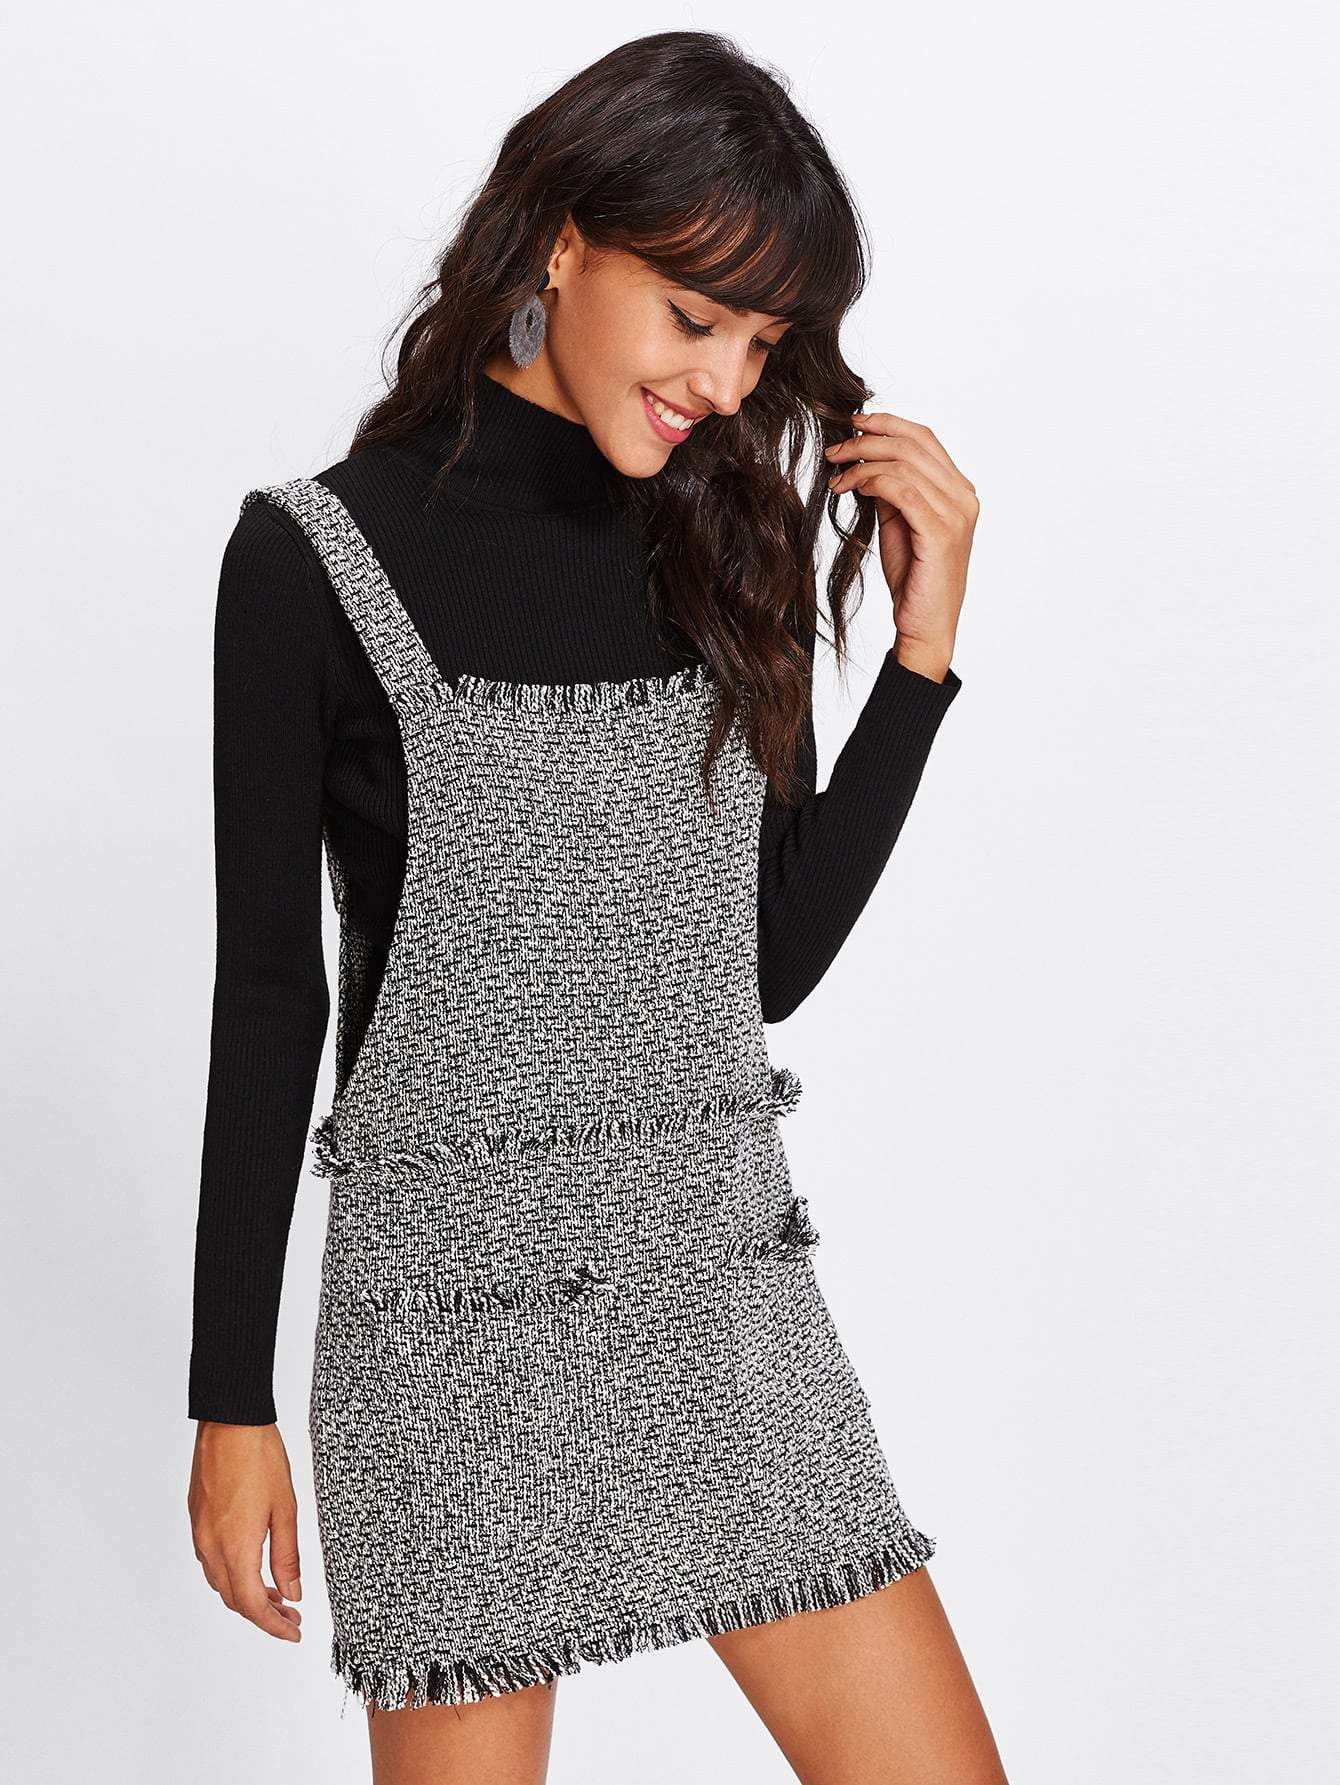 Fringe Detail Tweed Overall Dress - LoveSylvester